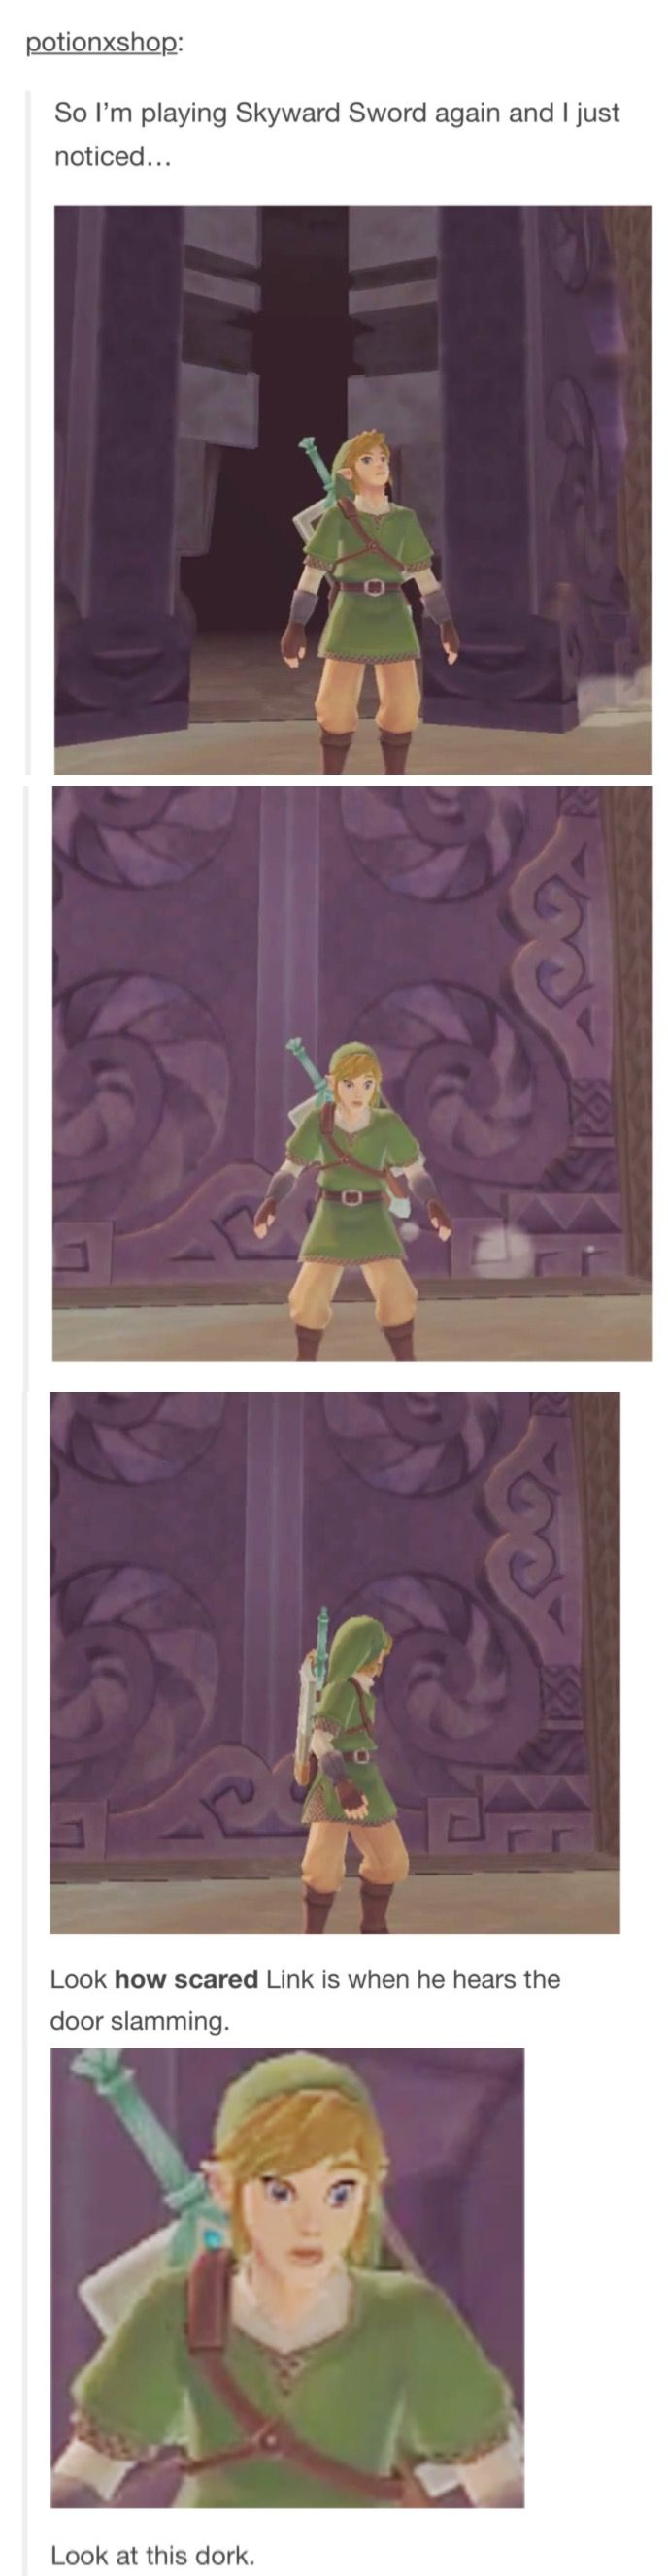 Link may be the holder of the Triforce of Courage but loud noises still scare him.